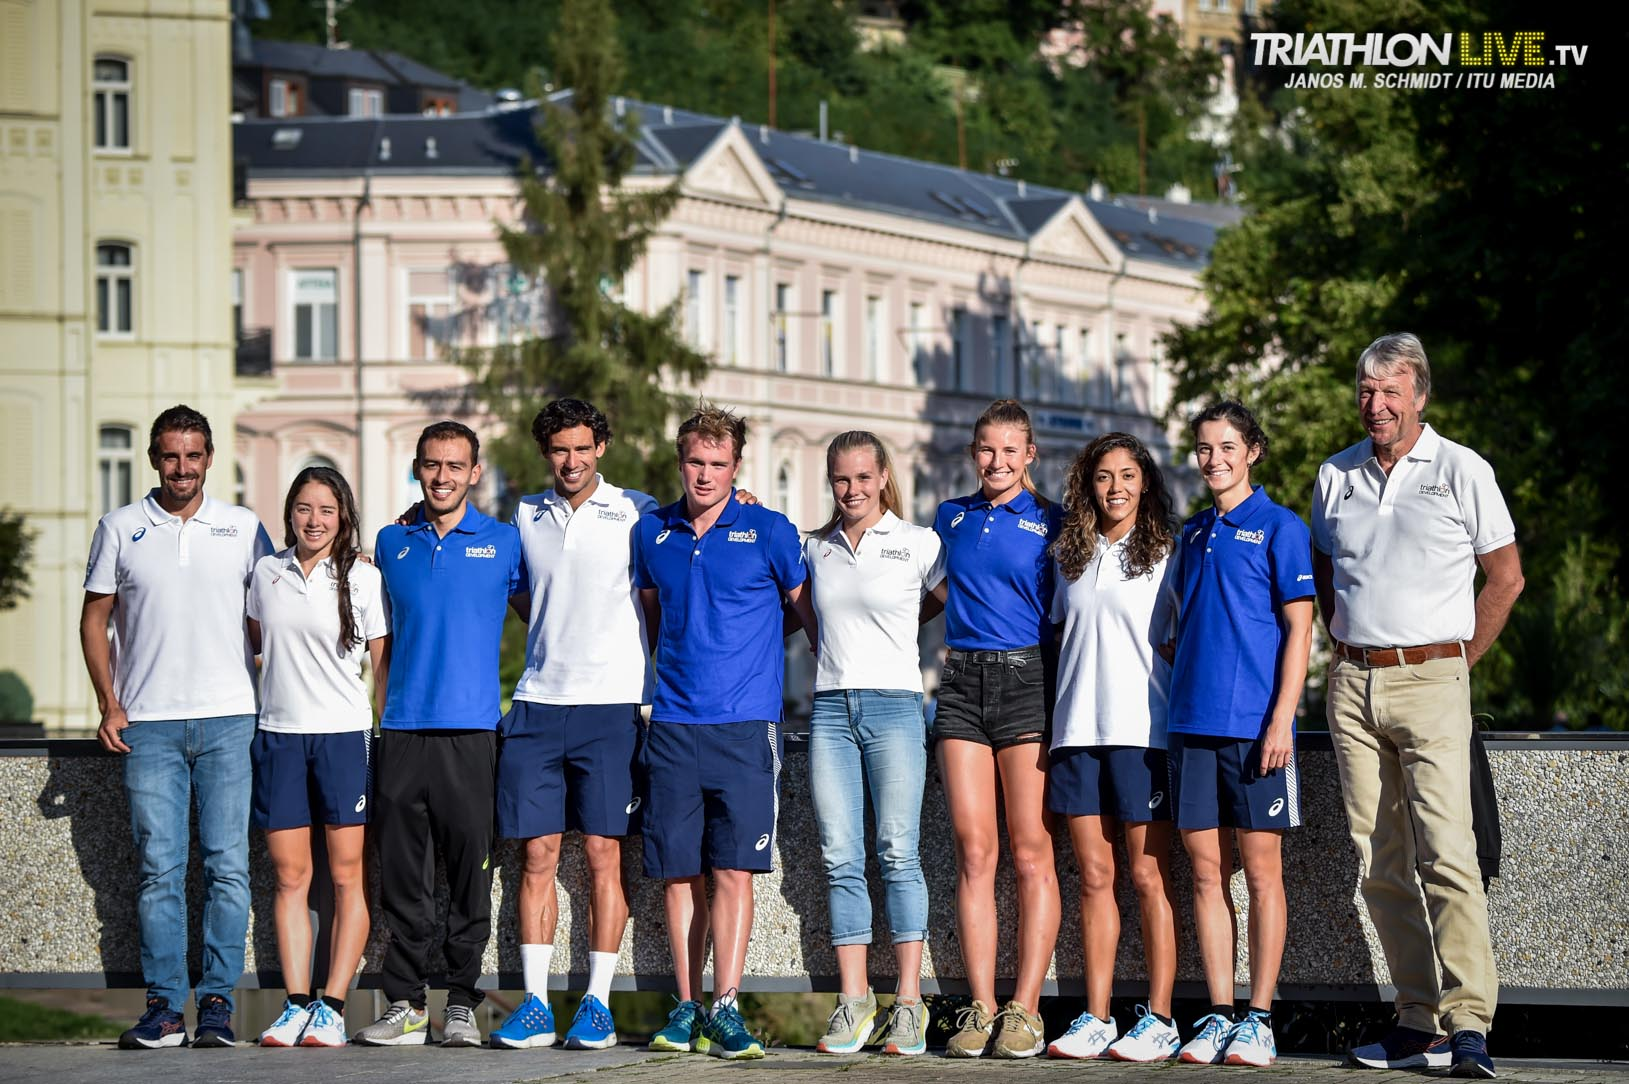 ASICS World Triathlon Team